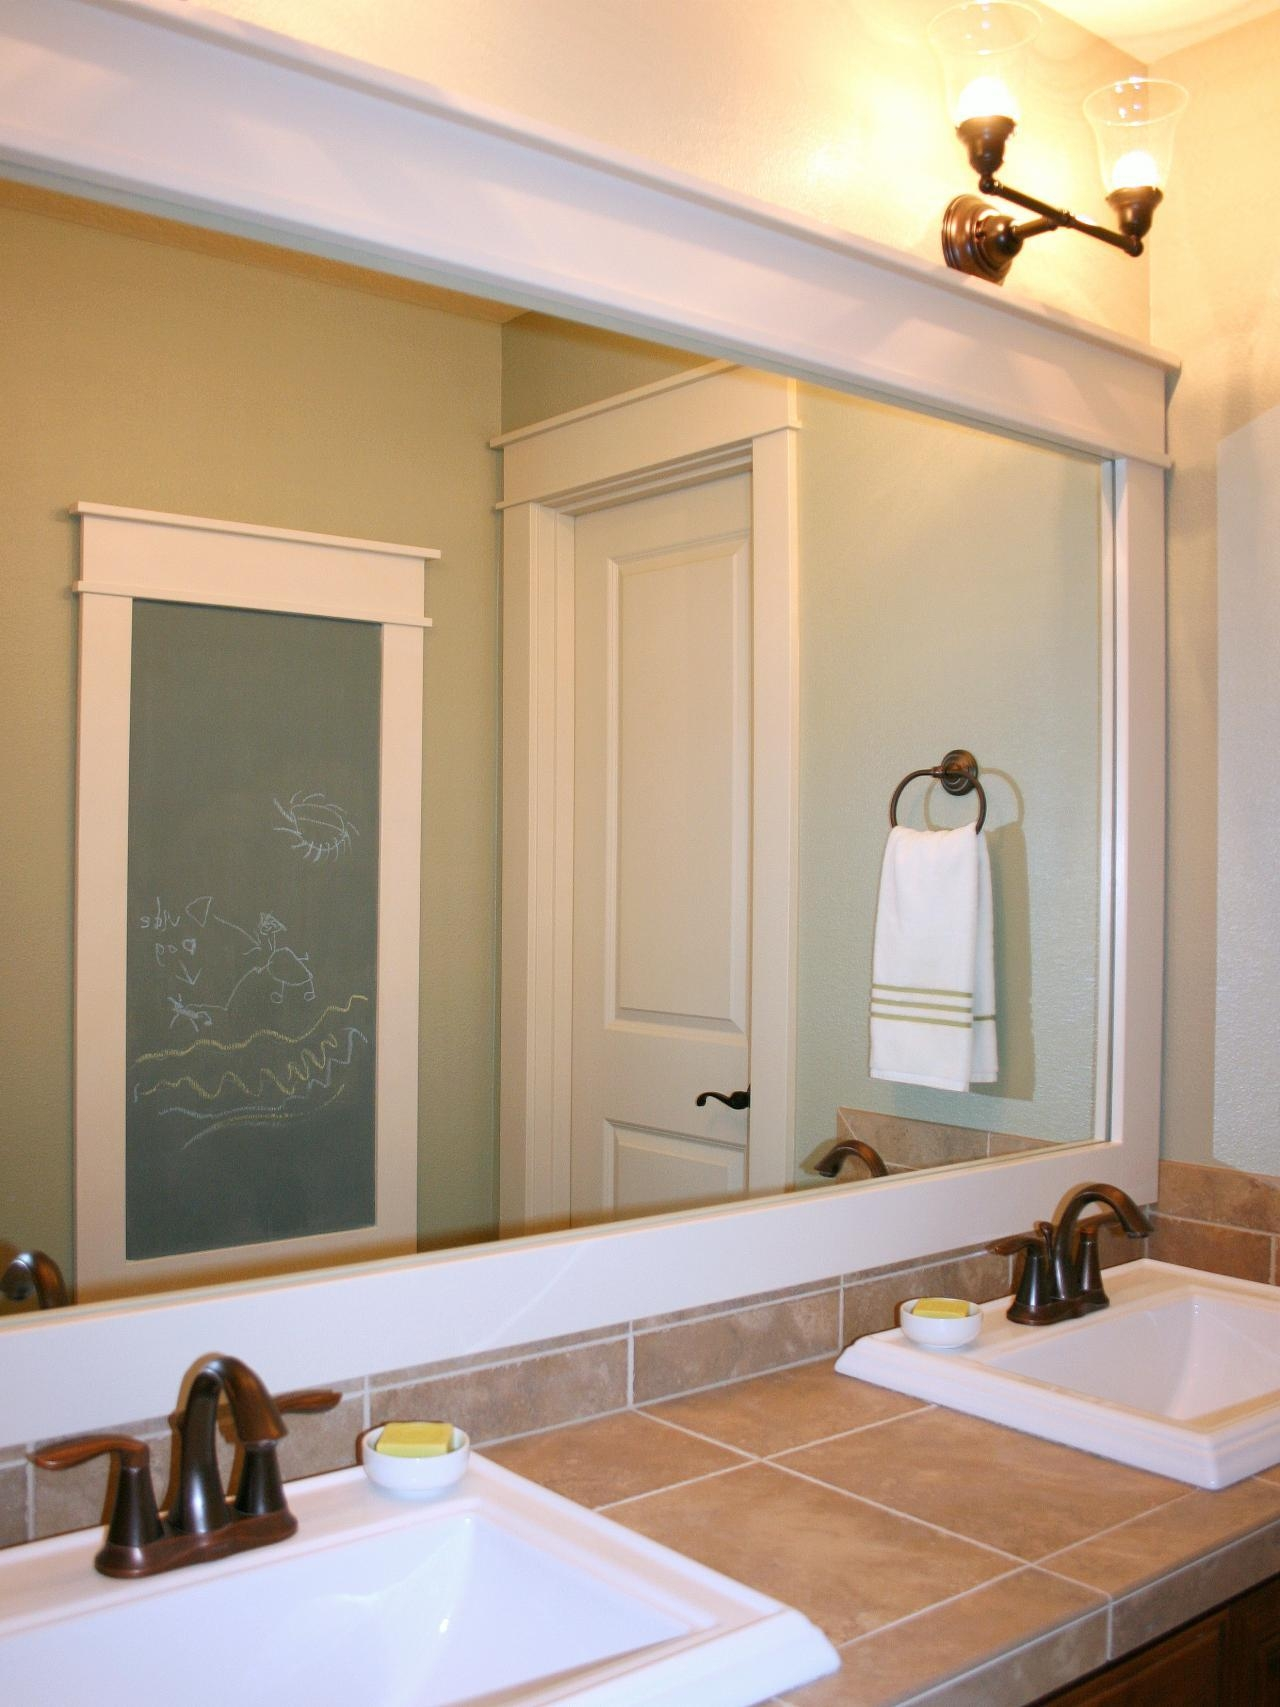 How To Frame A Mirror | Hgtv Regarding Wall Mirrors For Bathrooms (Image 11 of 20)